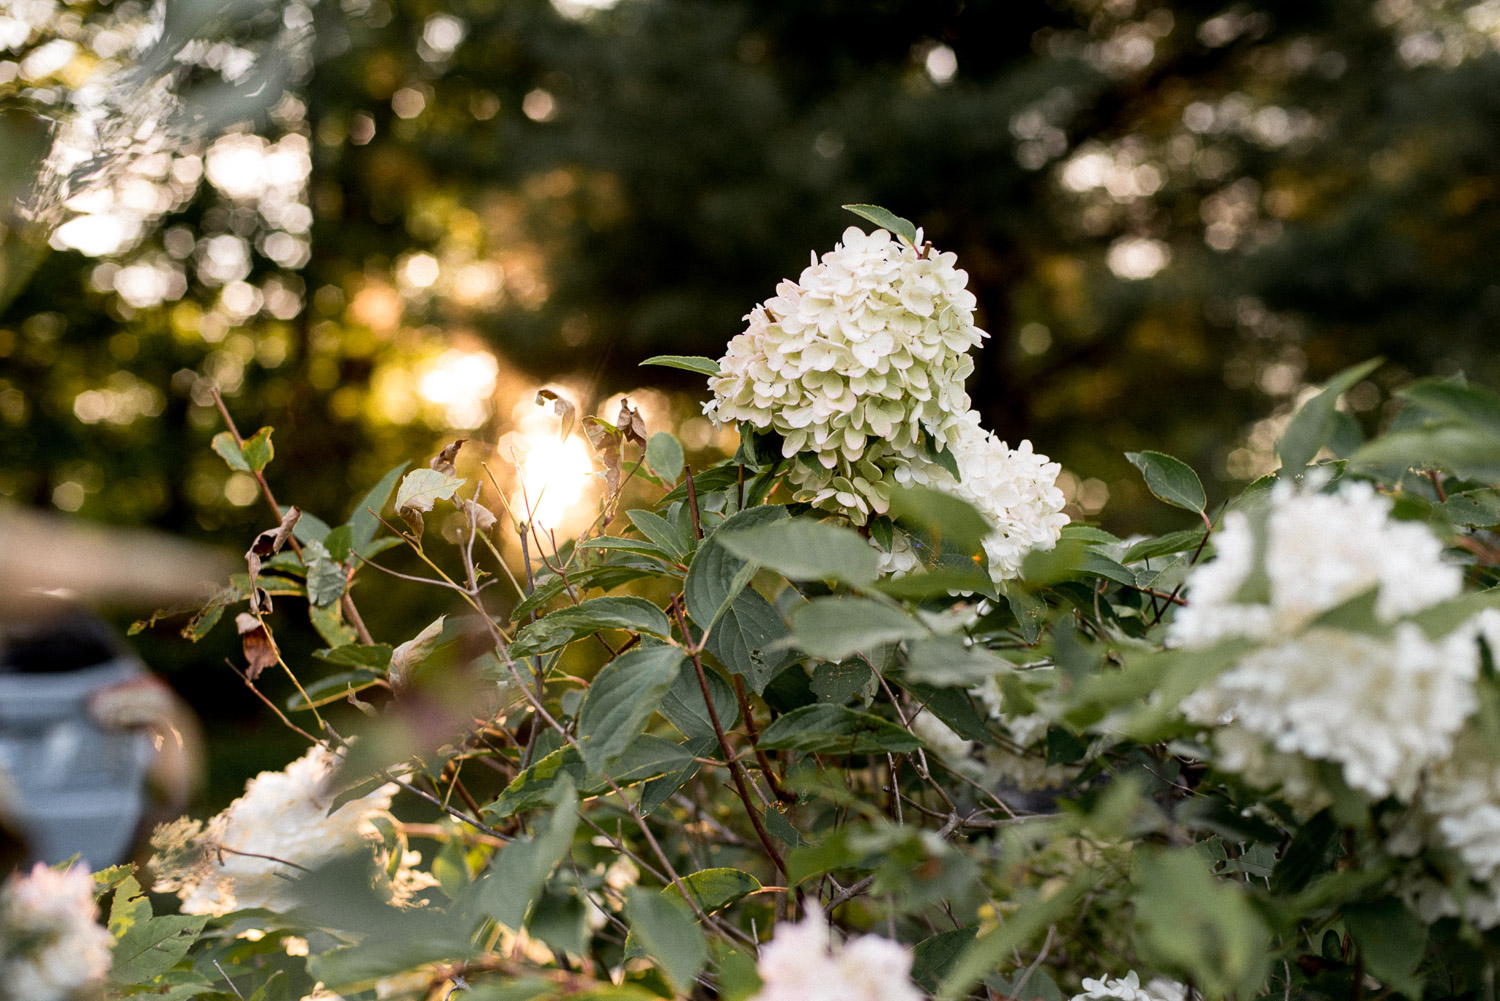 hydrangea plant at Ontario cottage